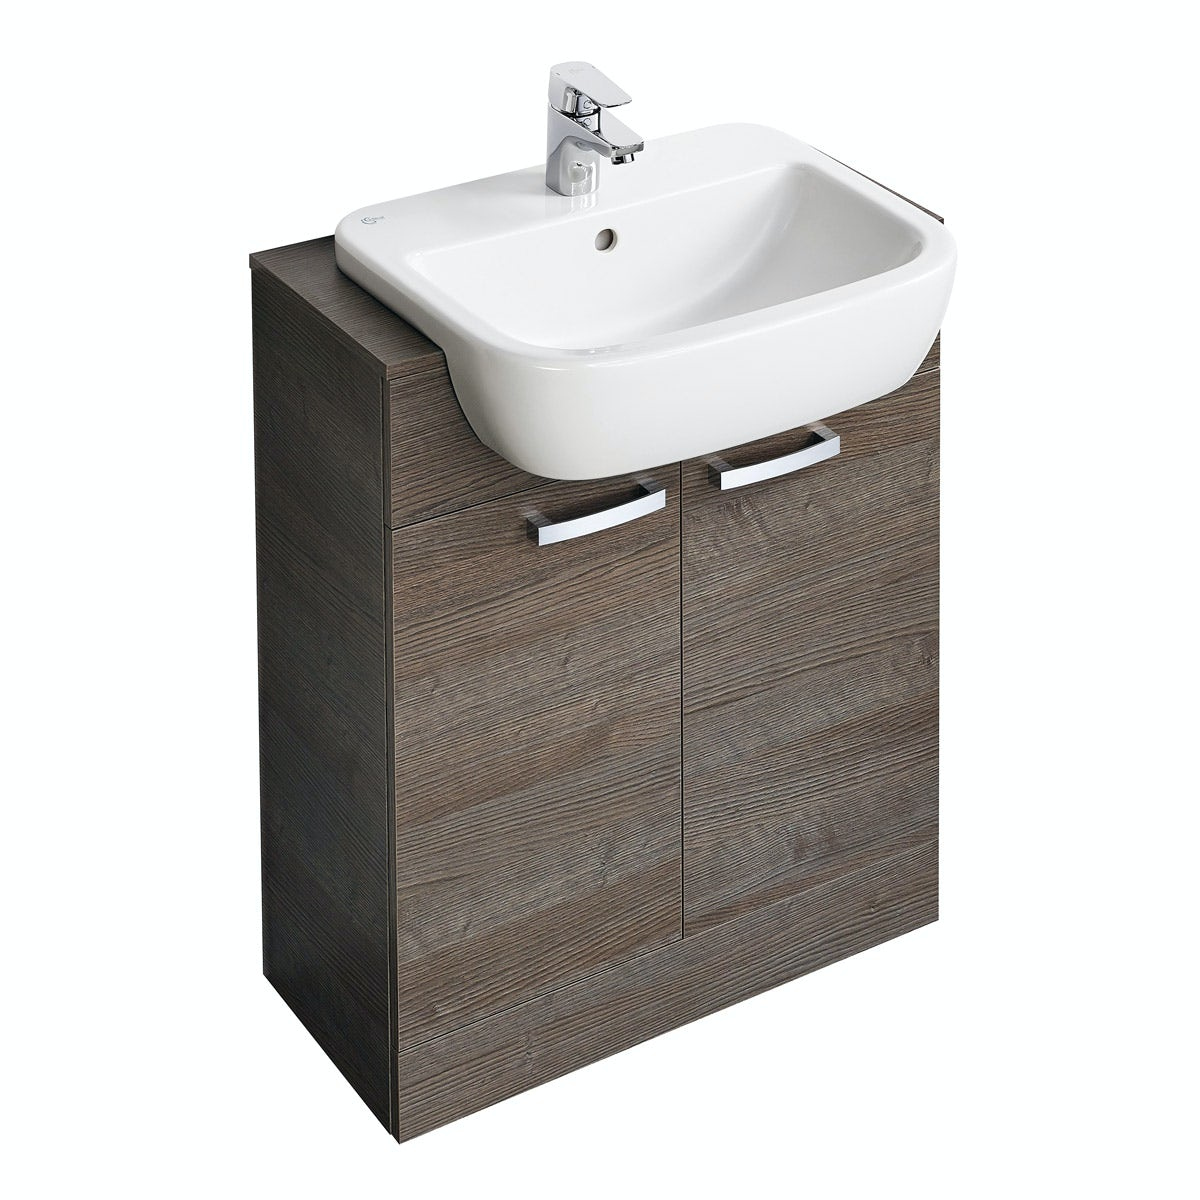 Ideal Standard Tempo sandy grey vanity door unit and basin 650mm